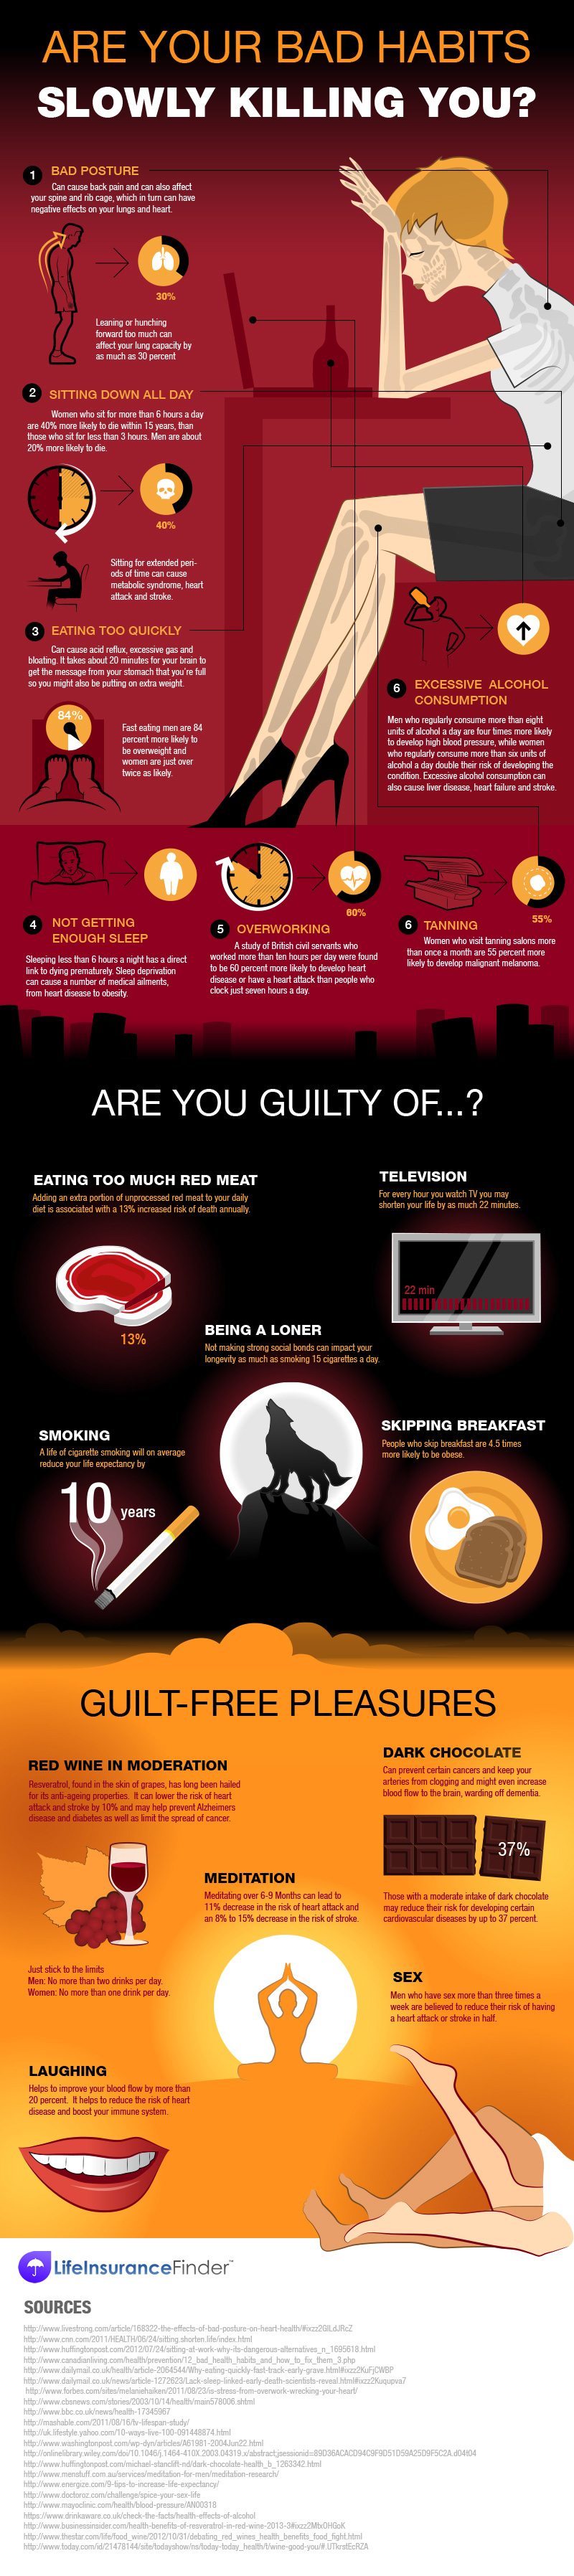 Bad habits that slowly kill you inforgraphic